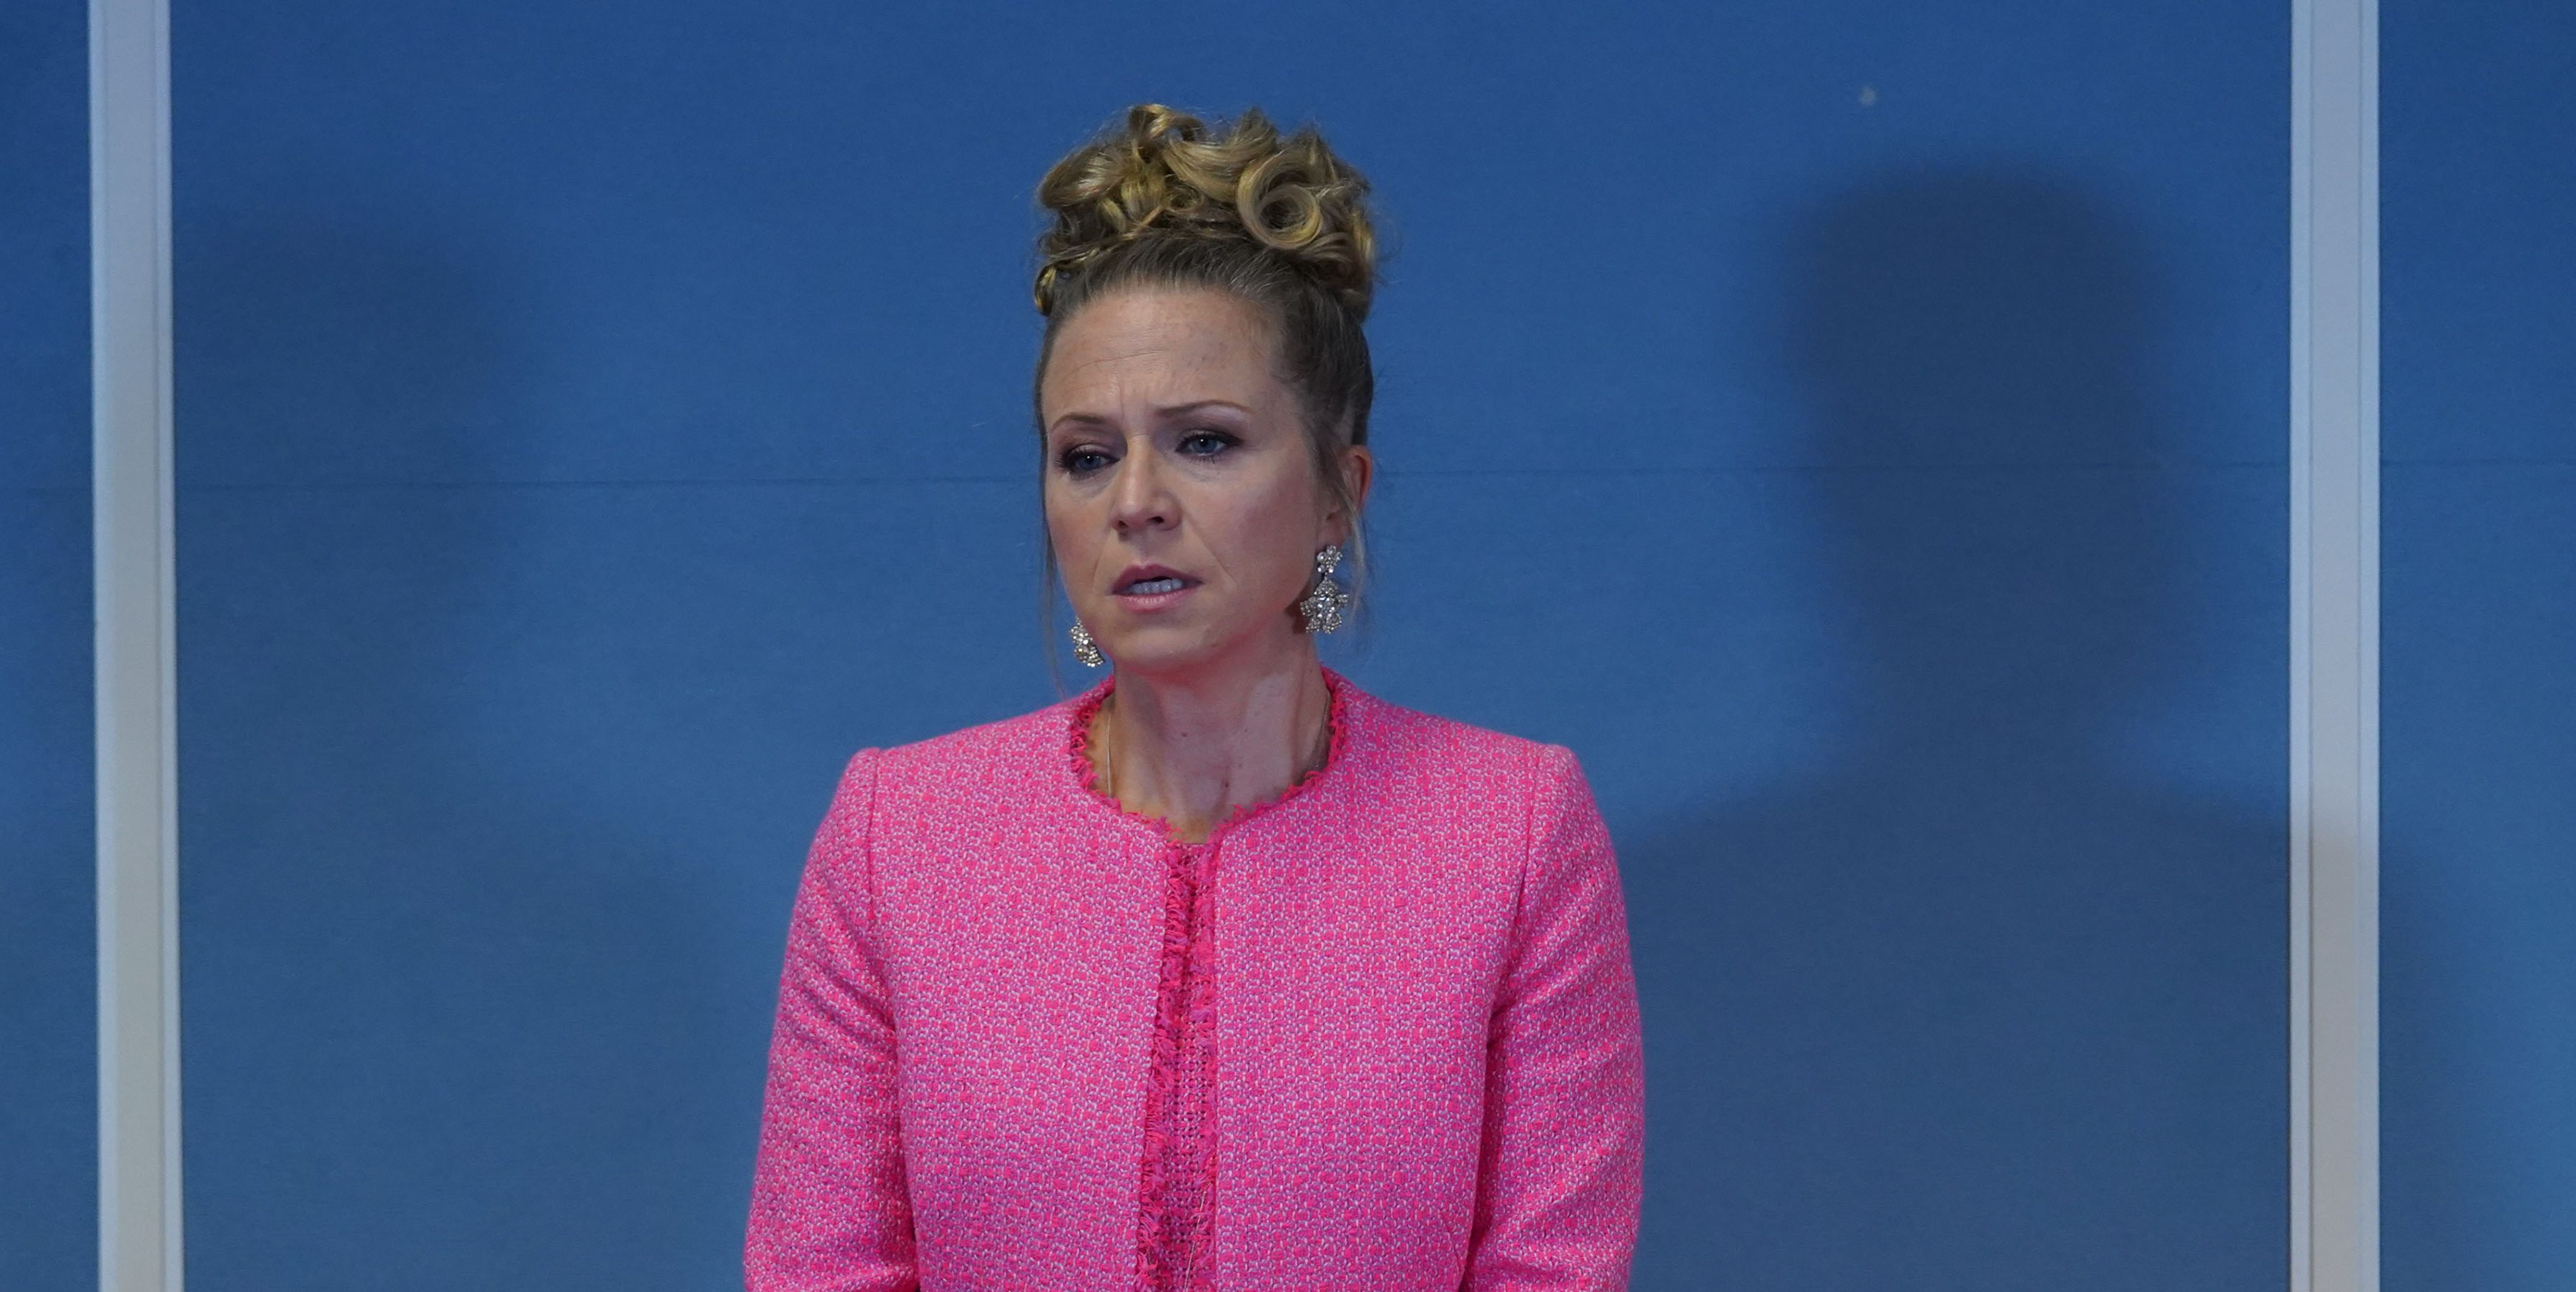 EastEnders to air special New Year's Eve episode focusing on Linda Carter's alcoholism battle